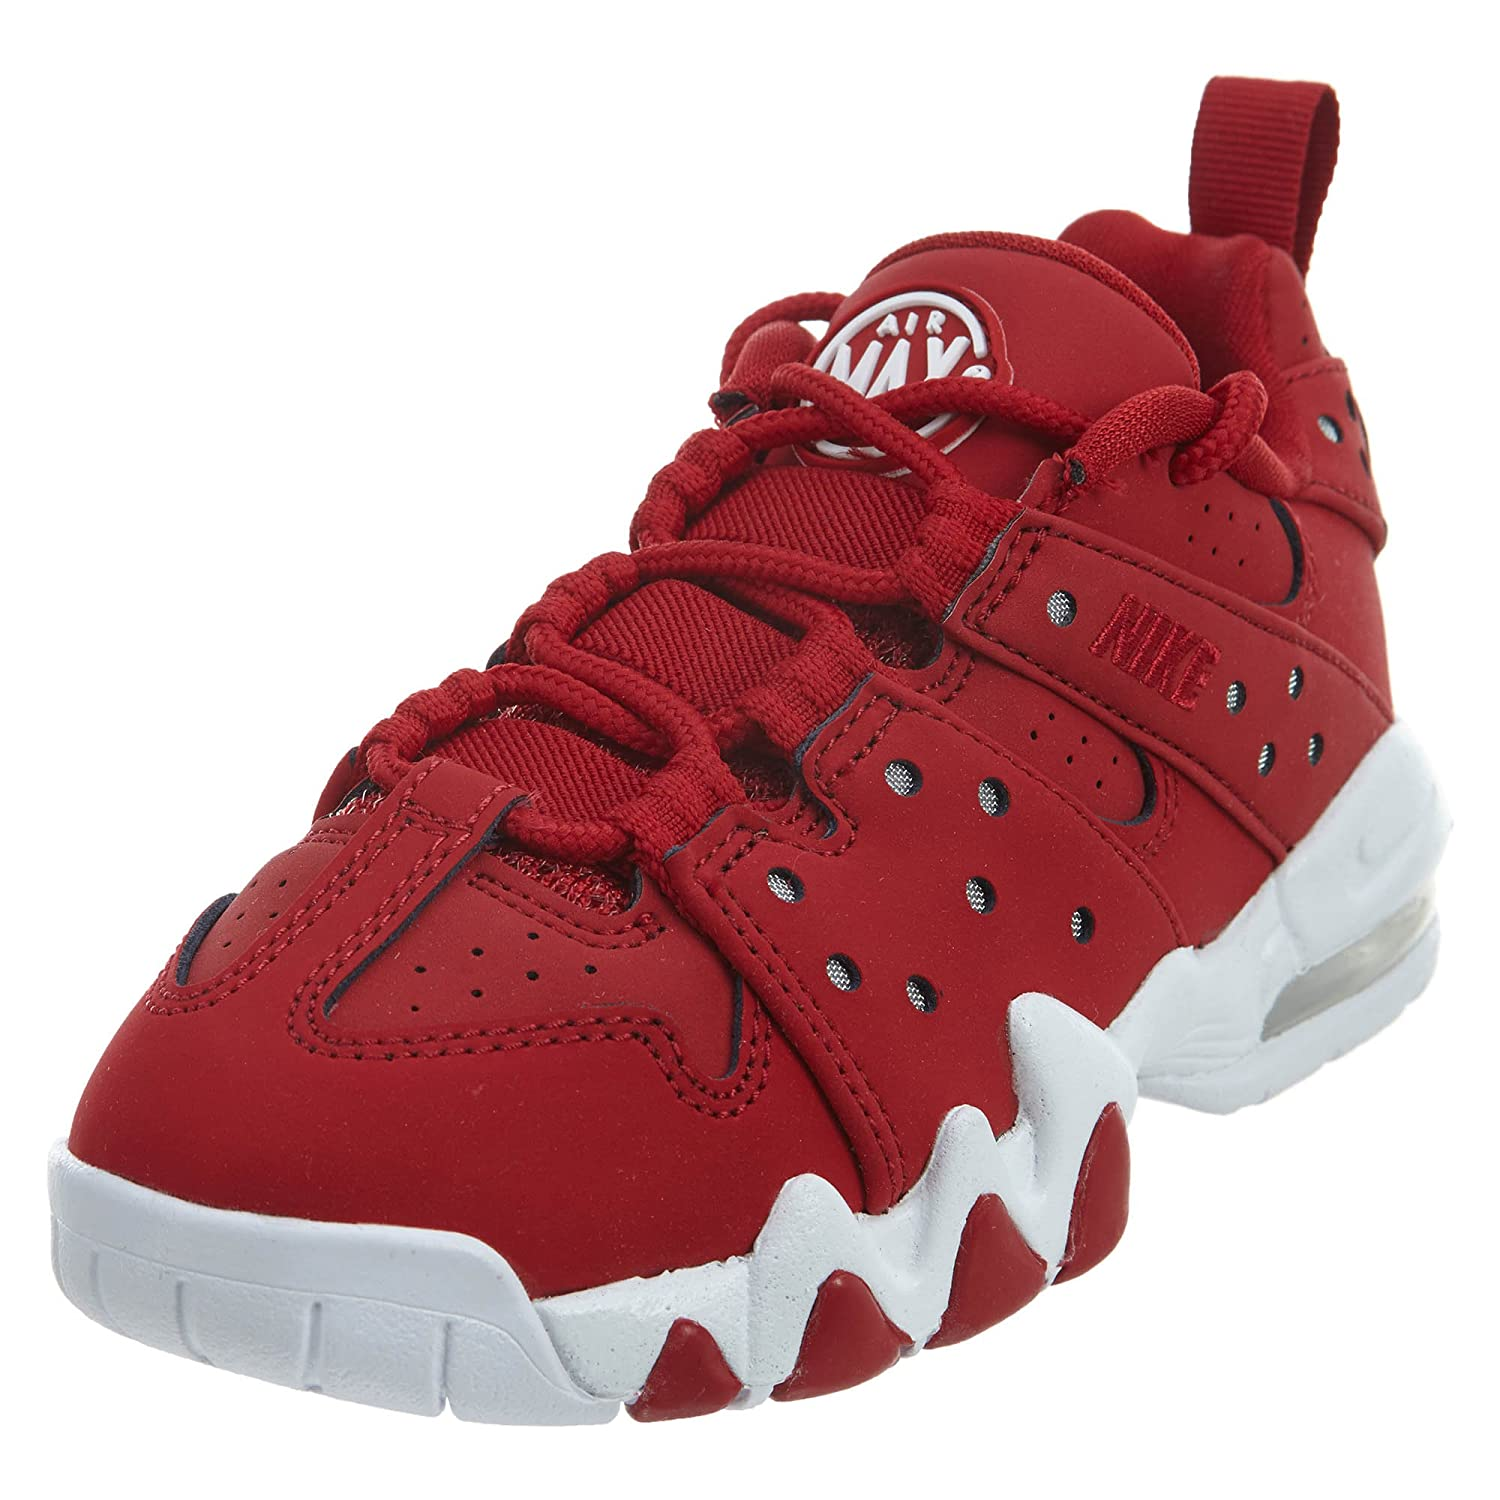 on sale 54ea6 38889 Amazon.com   Nike Air Max CB  94 Low Little Kid s Shoes Gym Red White Gym  Red 918337-600   Sneakers